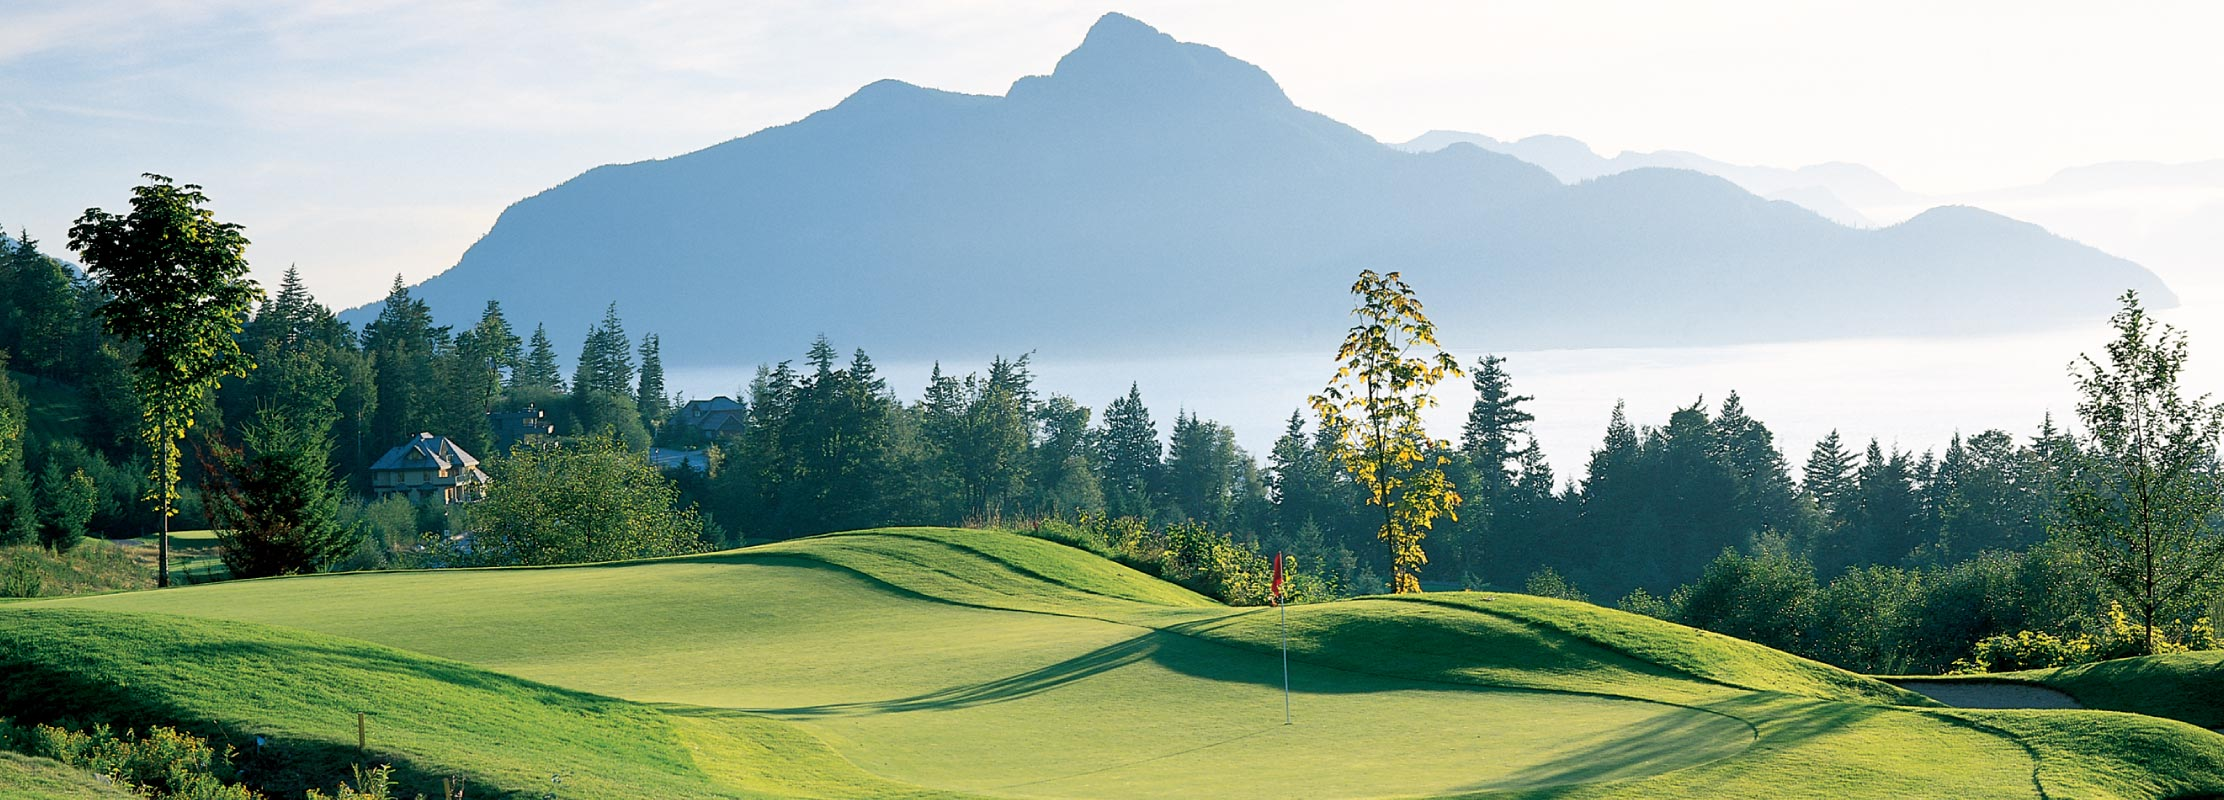 Furry Creek Golf Course in Squamish, BC